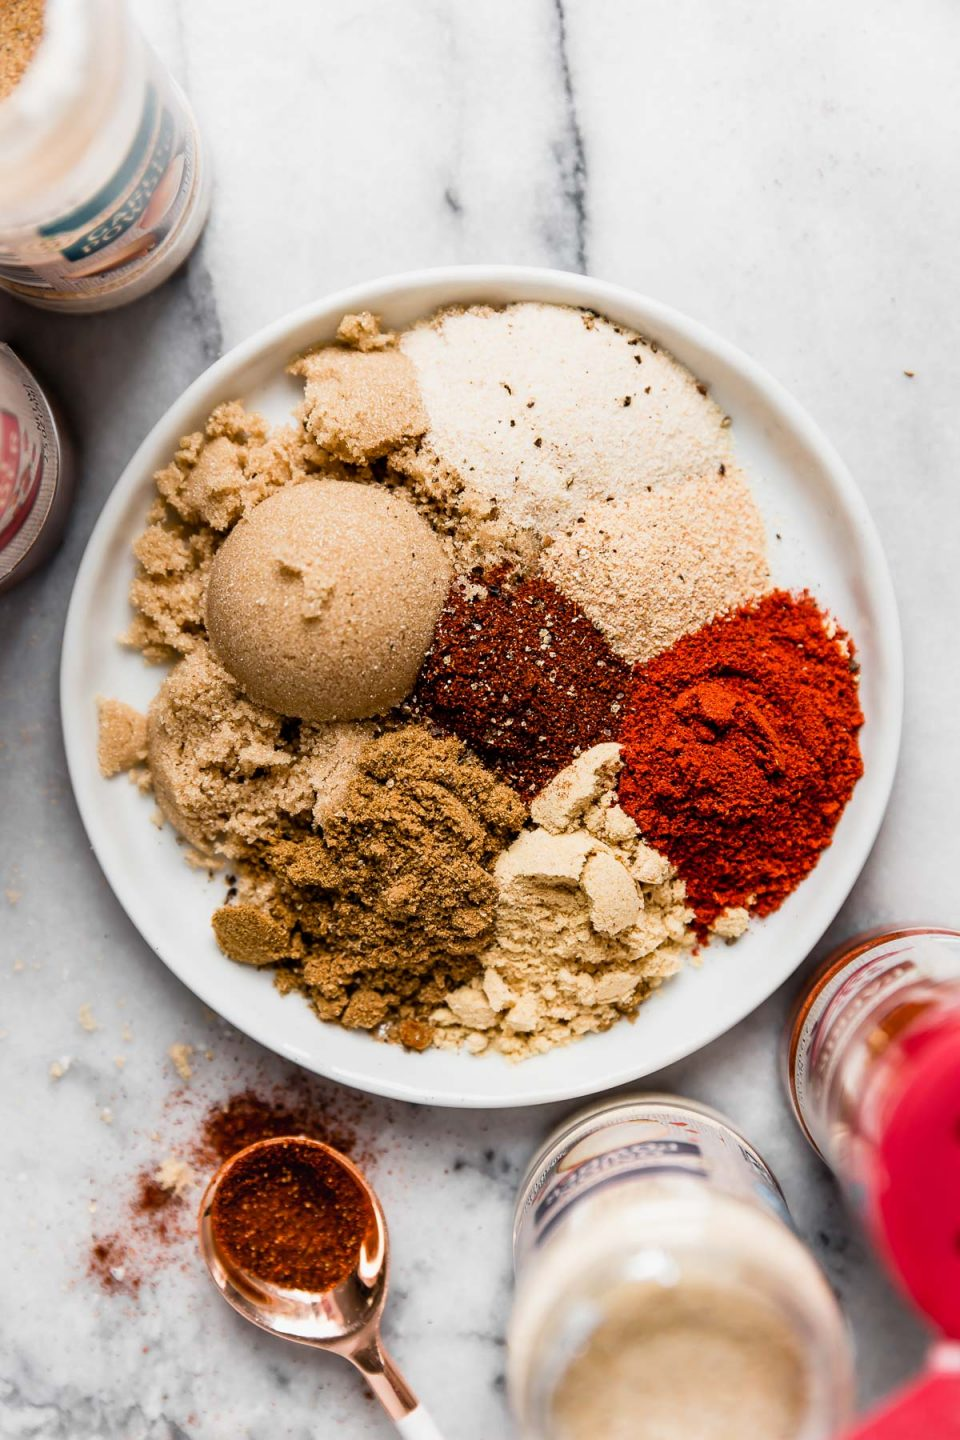 Ingredients for the BEST dry rub arranged on a small white plate, surrounded by bottles of spices & dried herbs from ALDI.